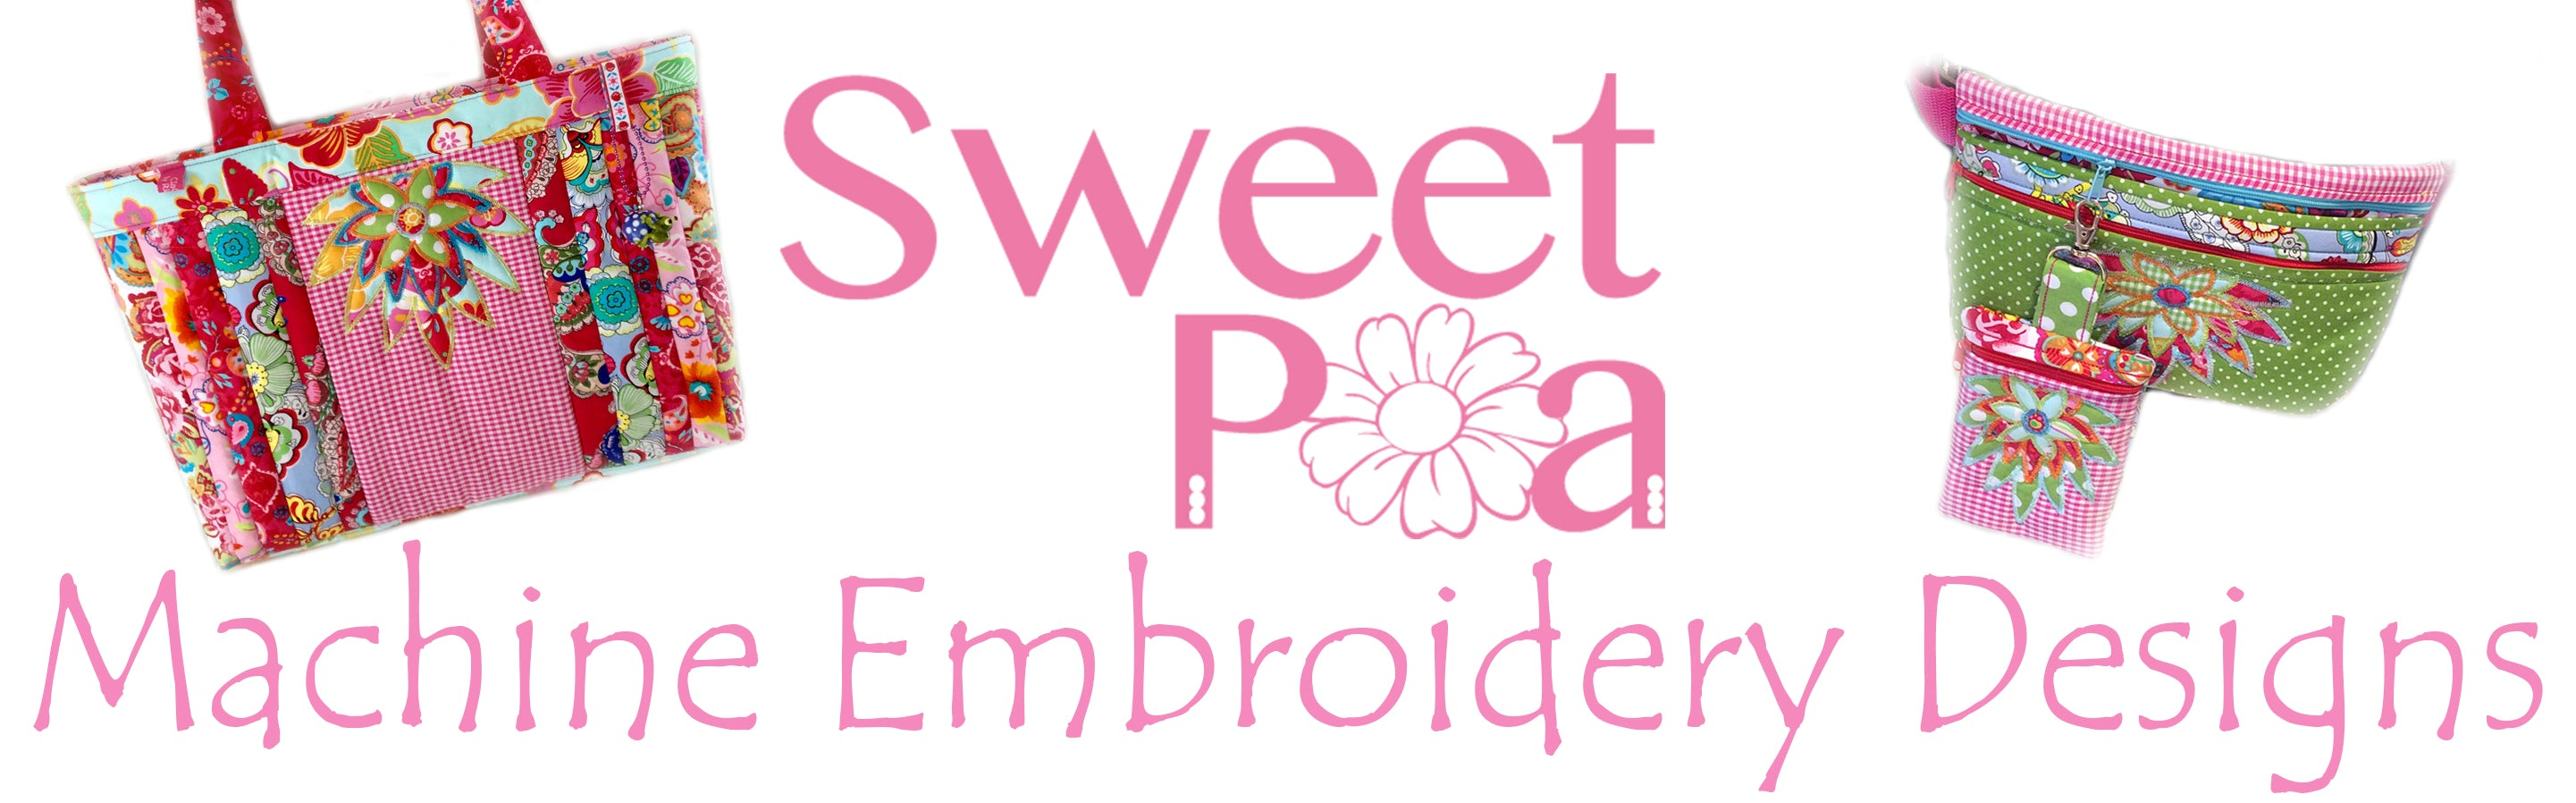 banner sweet pea